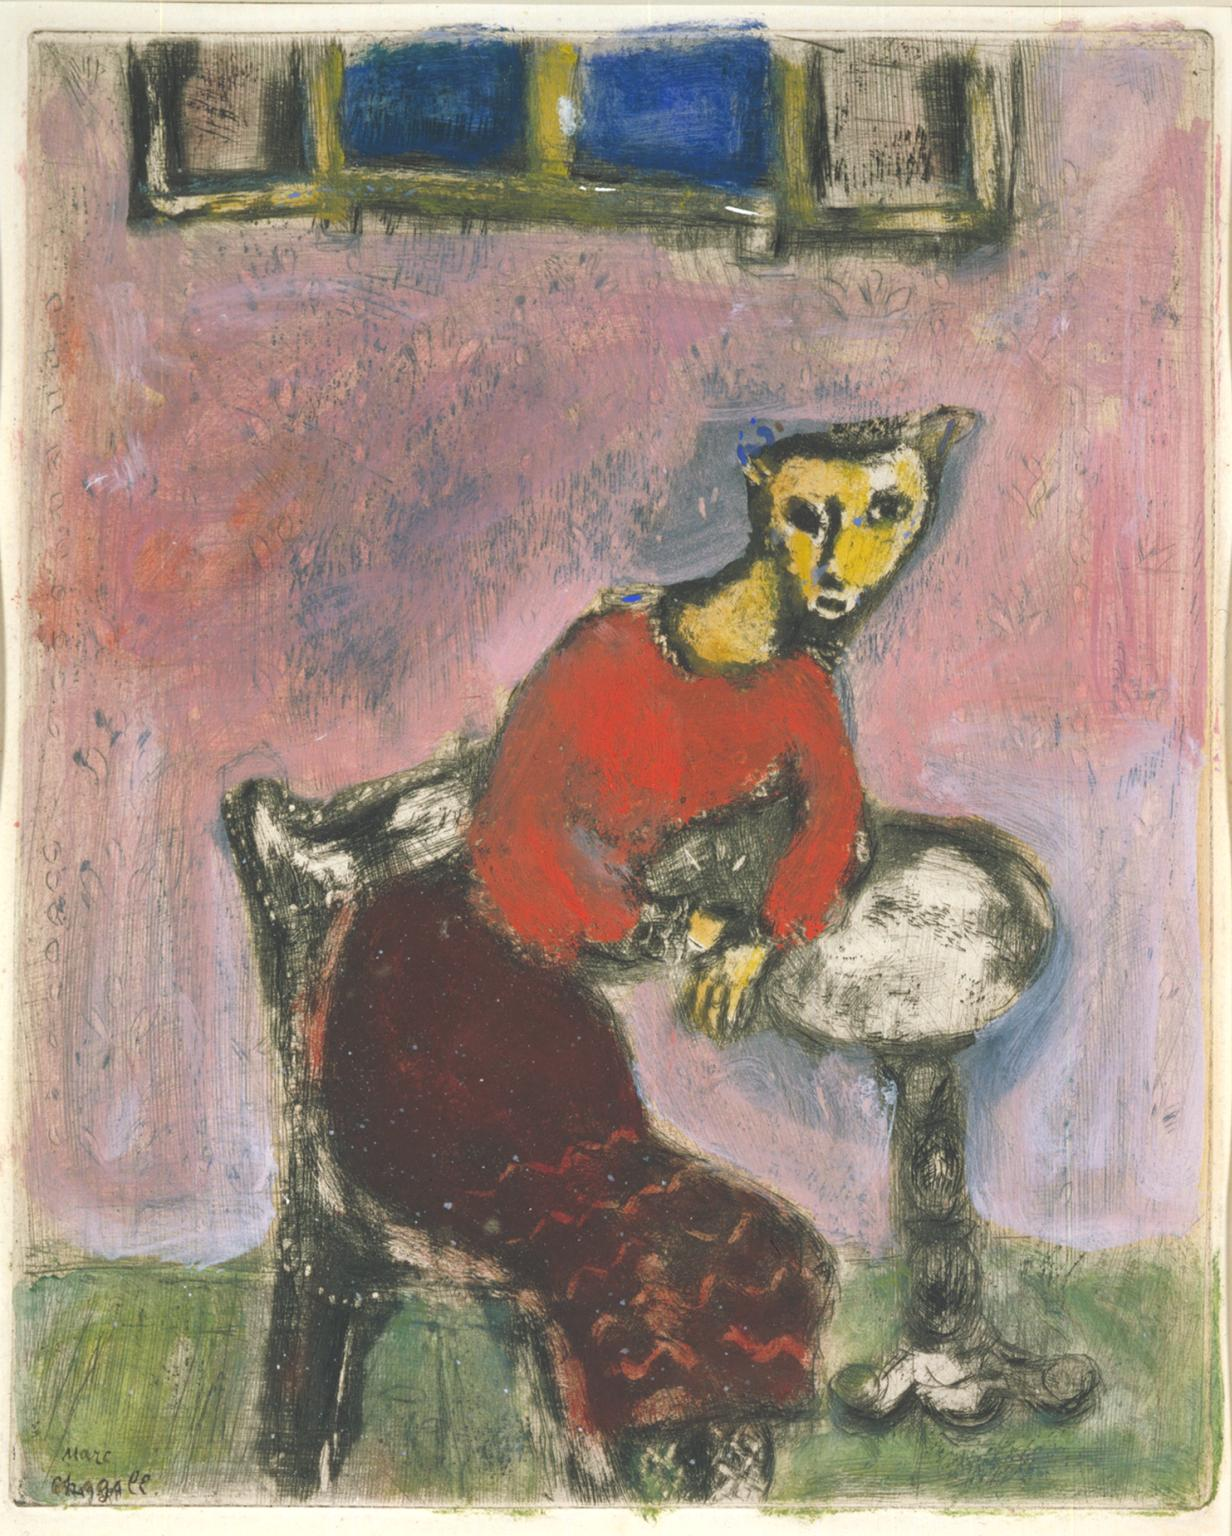 The Cat Transformed into a Woman c.1928-31-1947 by Marc Chagall